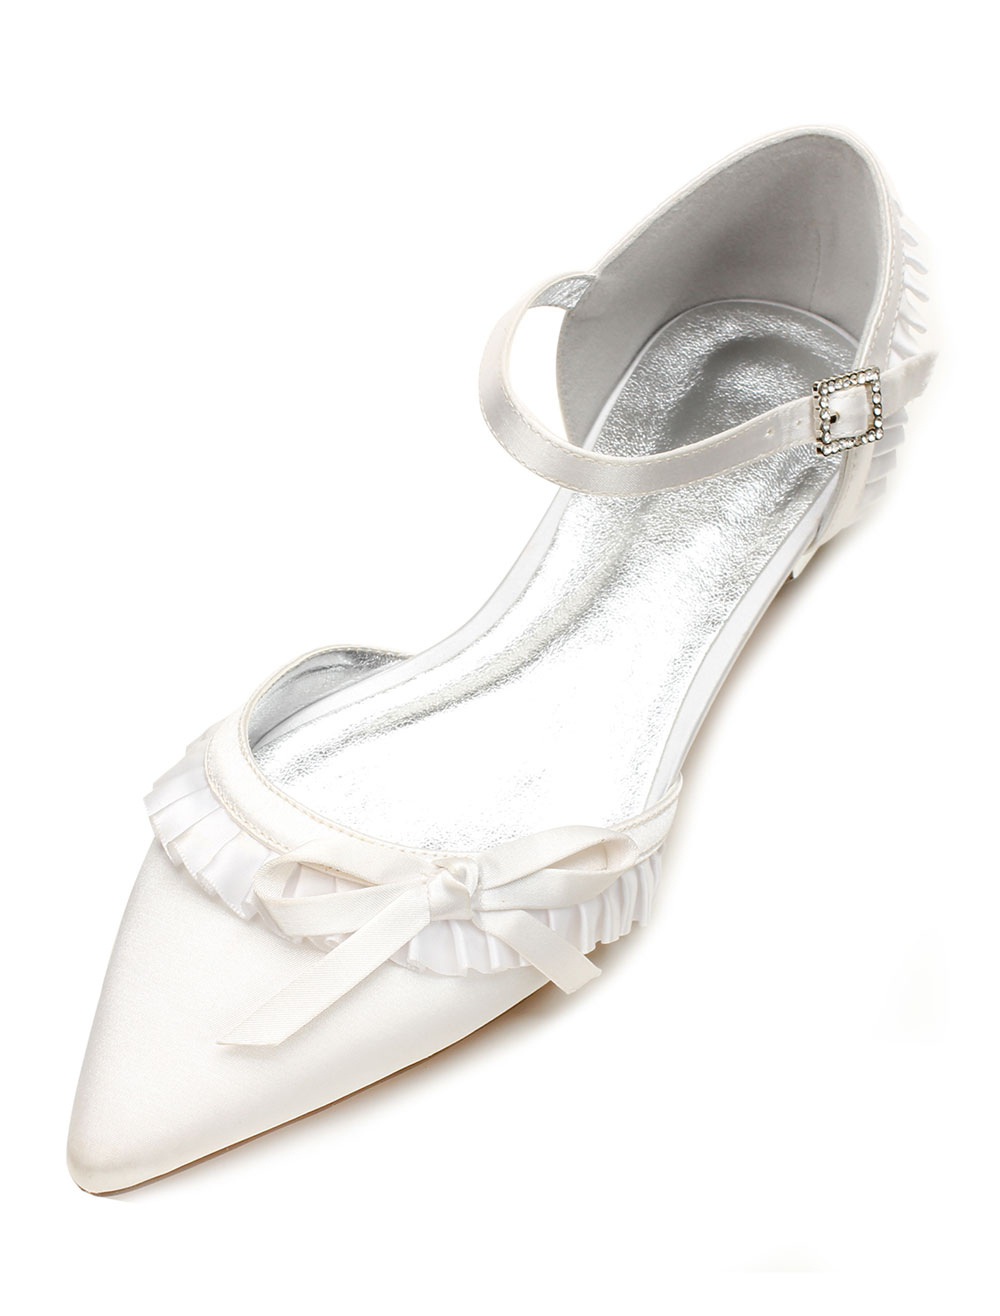 Ivory Wedding Shoes Satin Pointed Toe Ruffle Bow Buckle Detail Flat Bridal Shoes